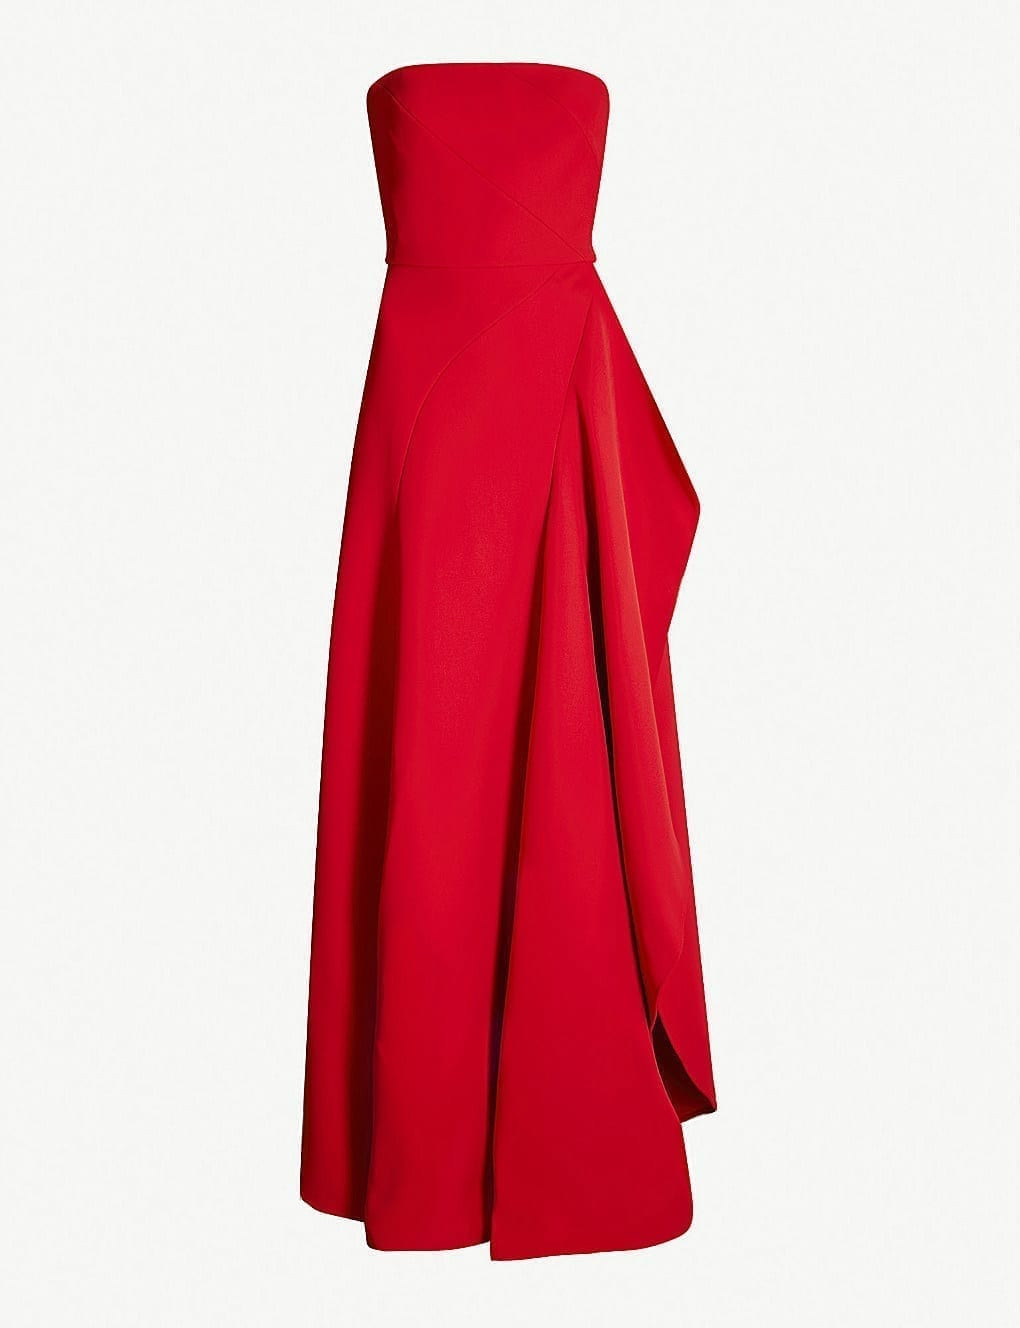 ELIE SAAB Strapless Asymmetric Woven Carmin Red Gown - We Select Dresses